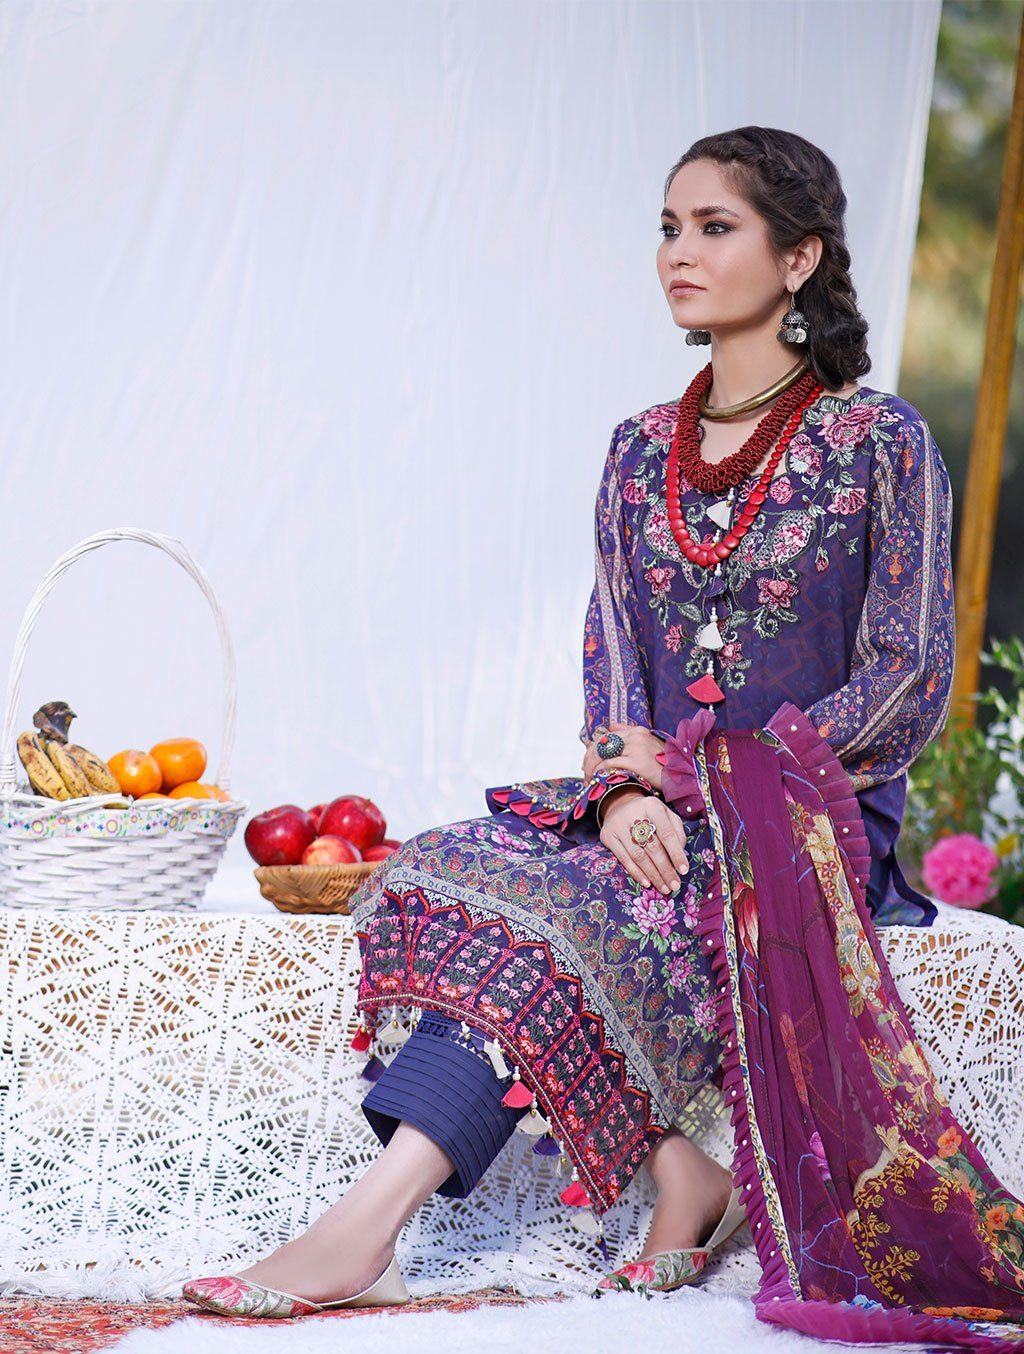 3 Piece Unstitched Printed Lawn Suit with Chiffon Dupatta KCE-6040 Khas Lawn 2021 - Volume 2 FASUNSLAD